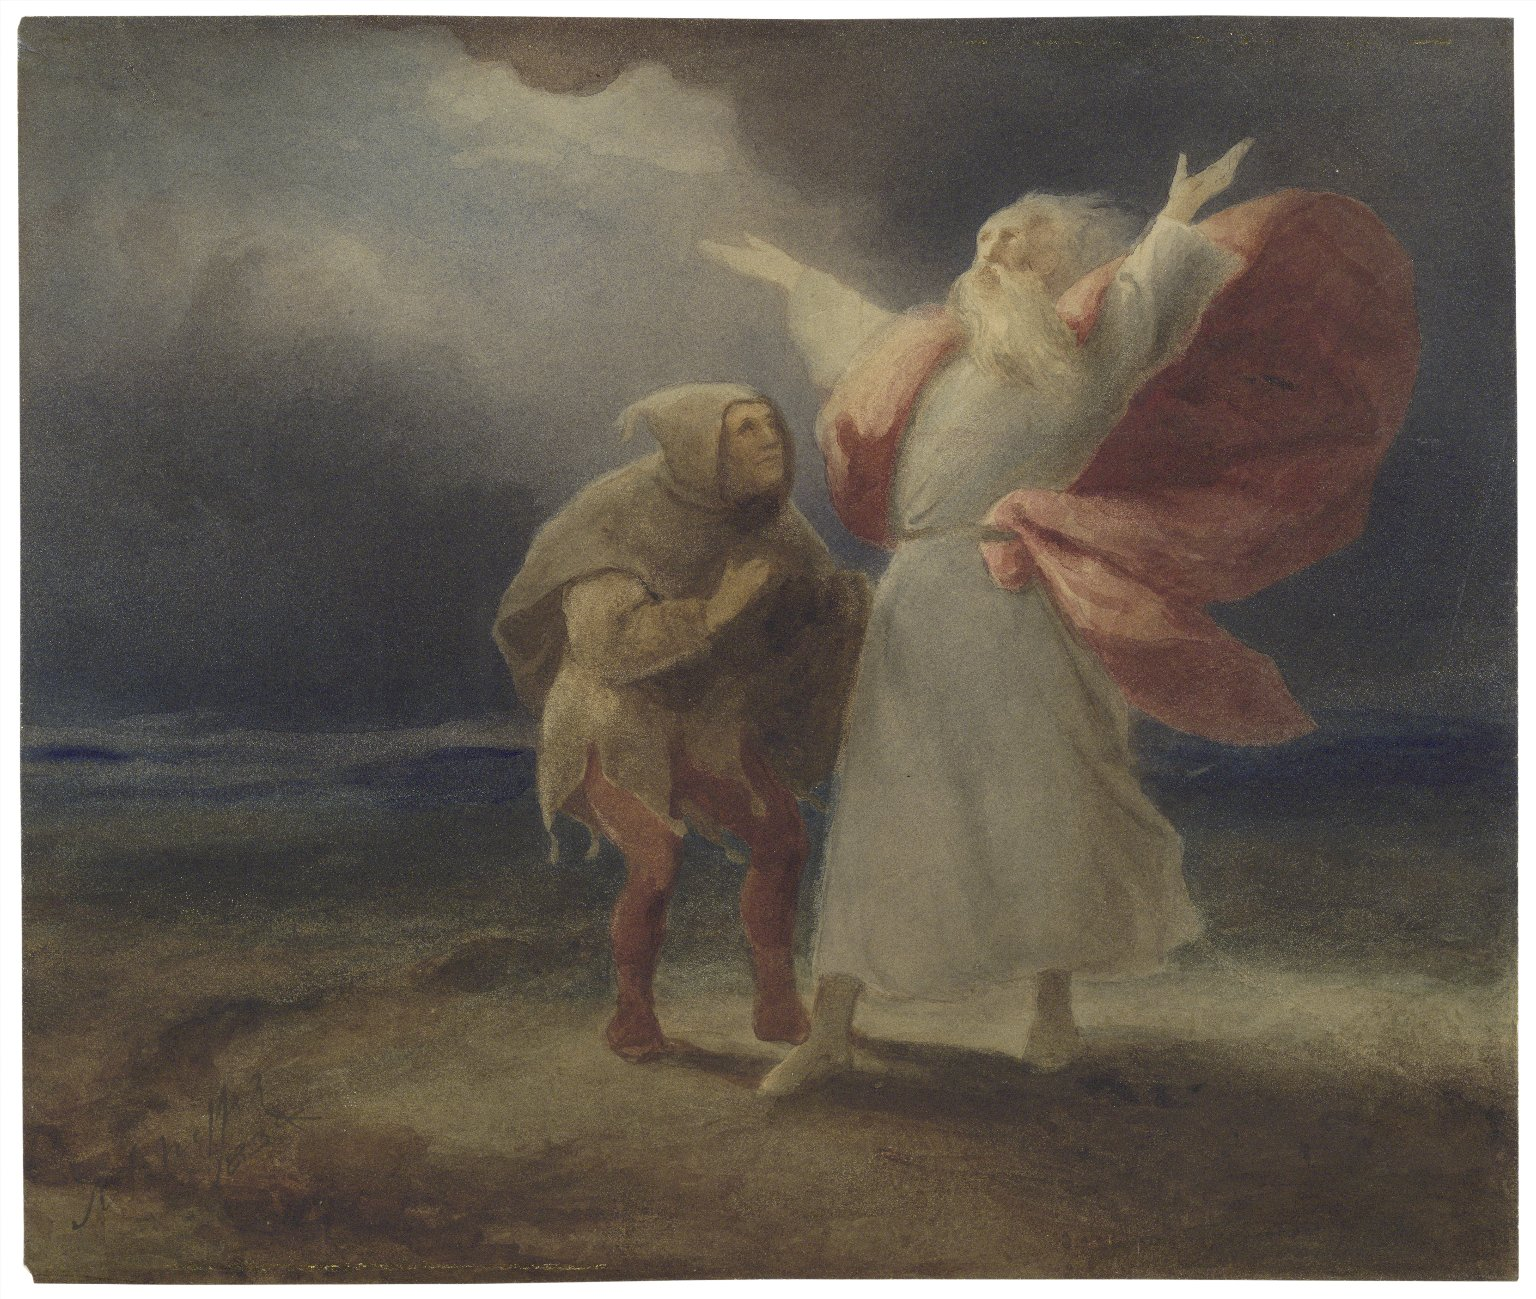 essay on king lear the fool Examination questions on king lear question: discuss the fool in king lear and his function in the play was he a boy or a man answer: our estimate of king lear.